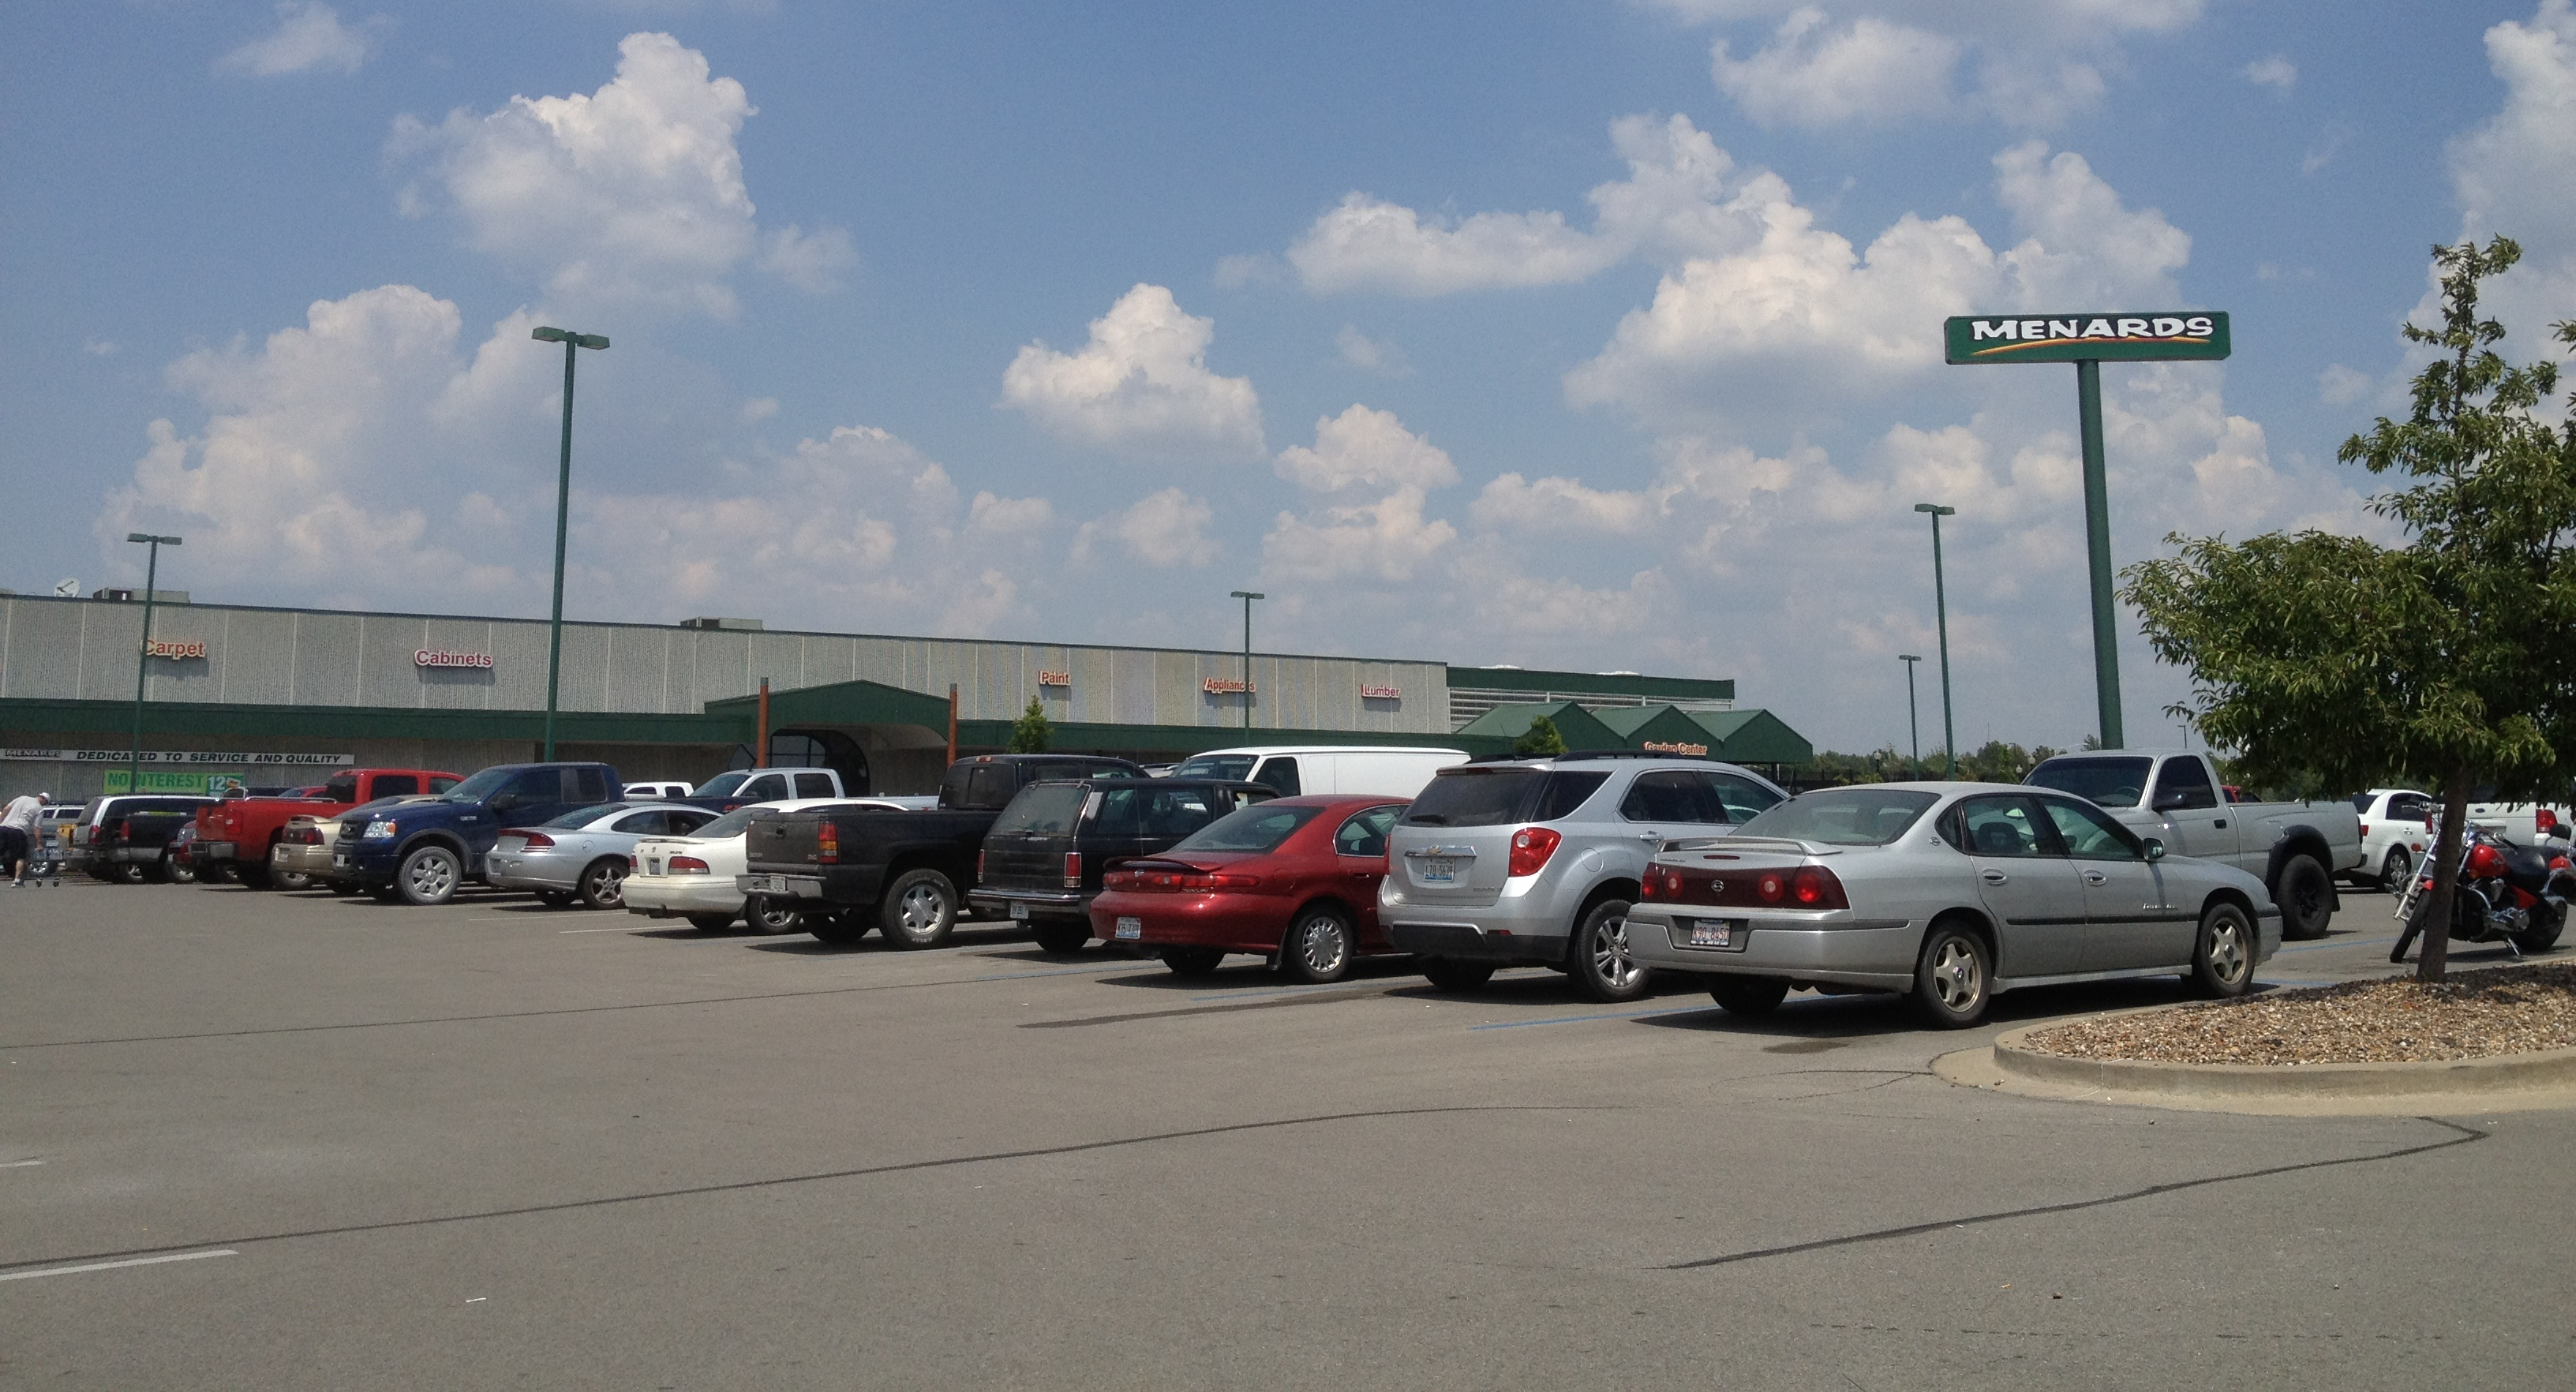 File:Menards Marion, IL (7319330966) jpg - Wikimedia Commons